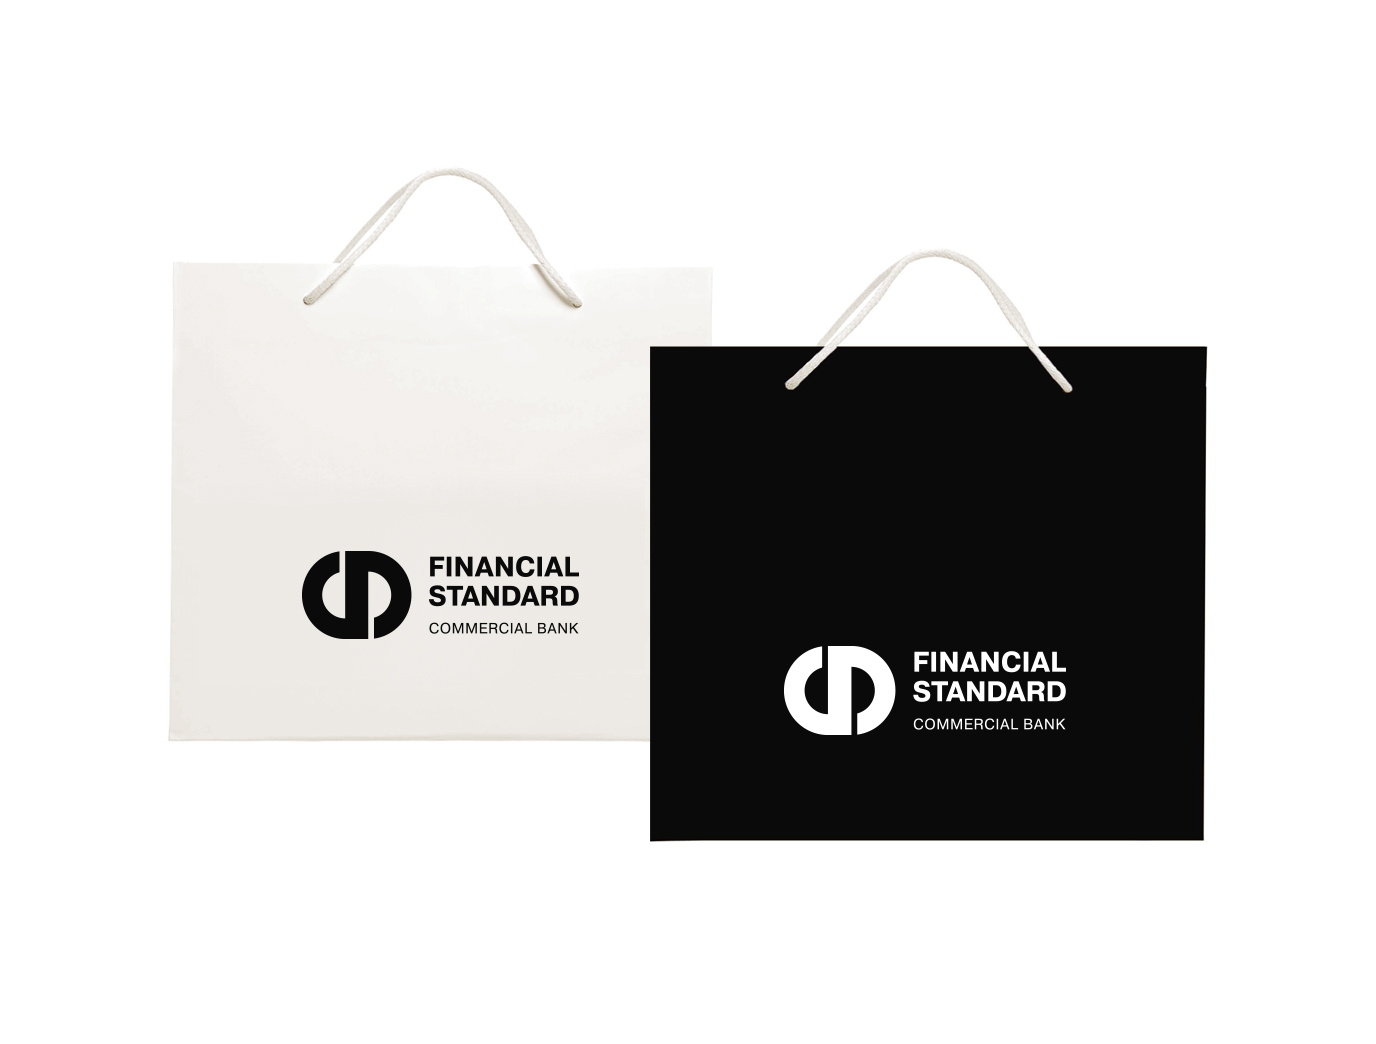 Finance Standart Commercial Bank bag